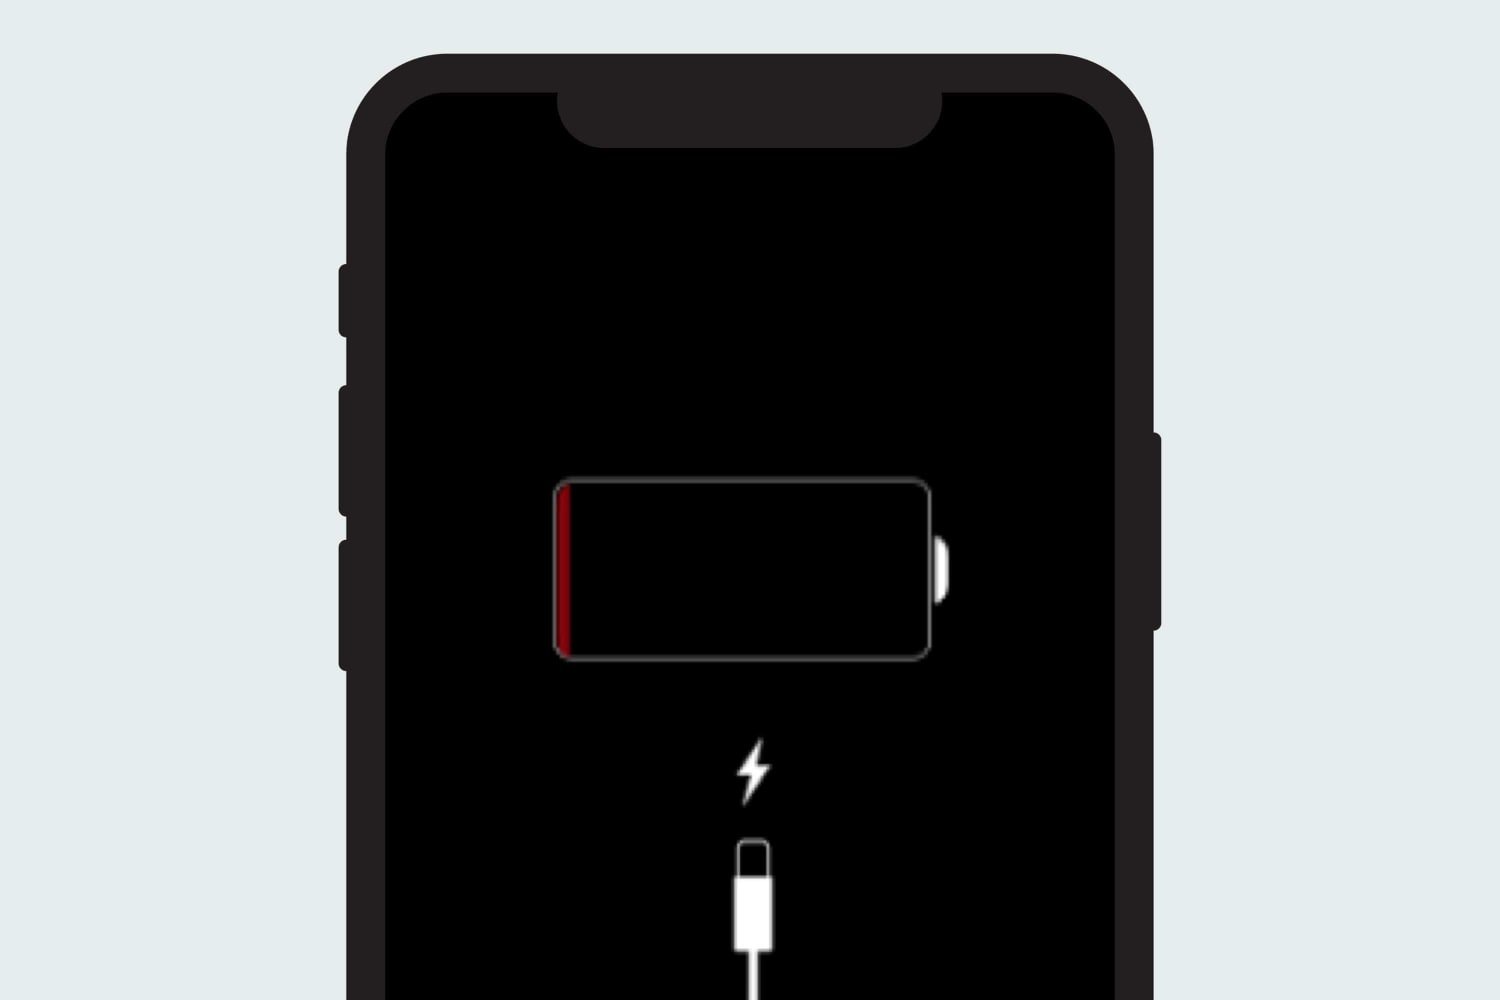 severe-battery-drainage-reported-with-ios-14-2-update-20201207-1